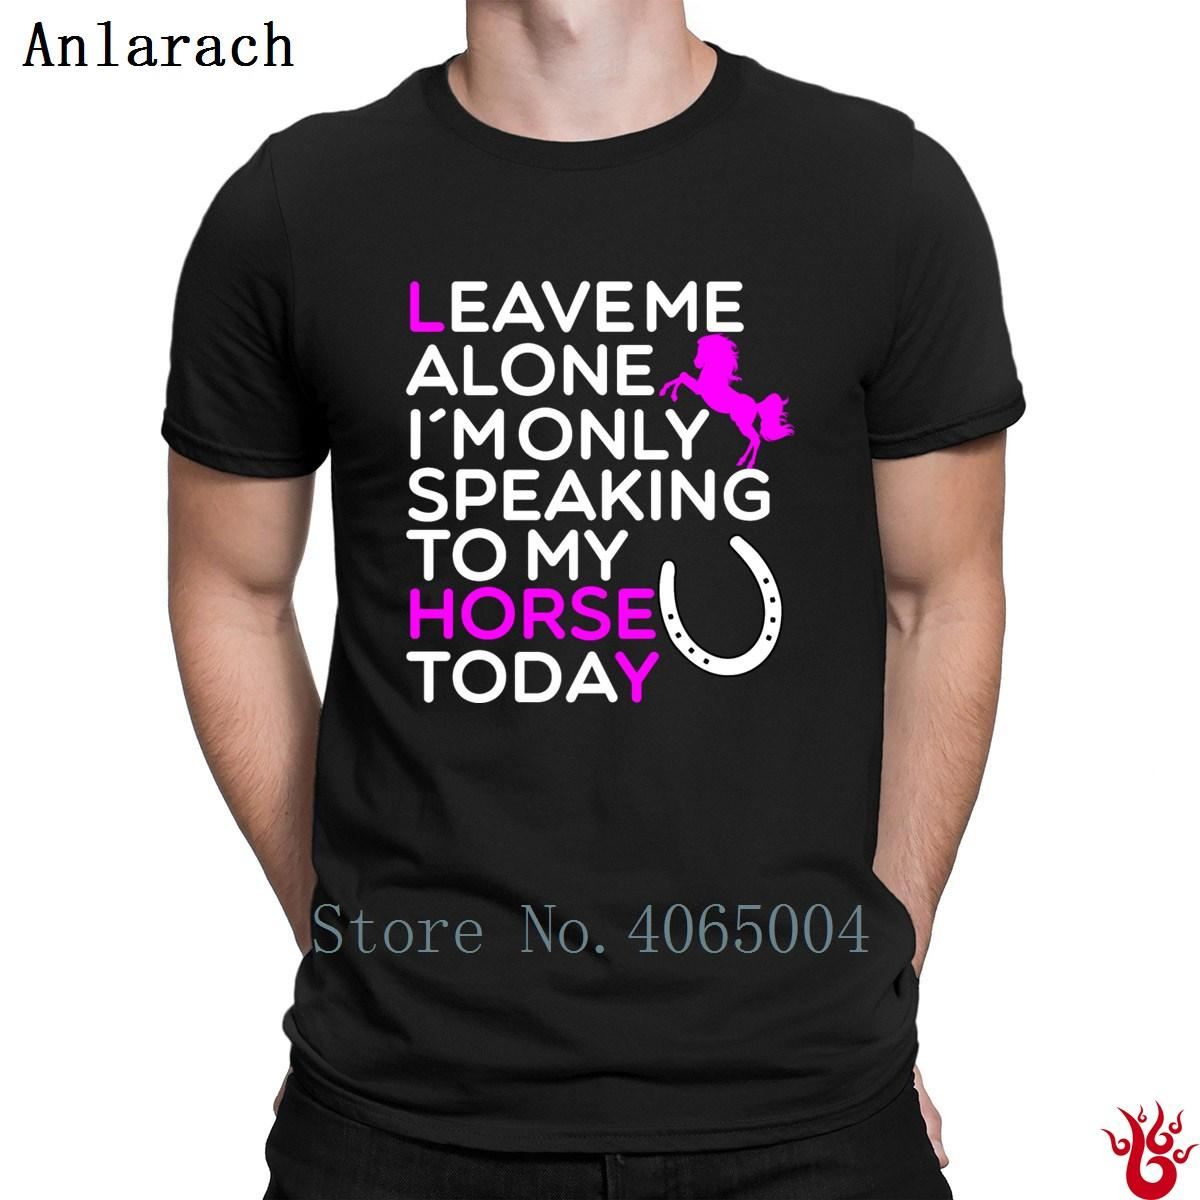 Funny Horse Quote For Horse Lovers Tshirts Novelty Costume T Shirt For Men Summer Style Funny Graphic Size S 3xl Hiphop Coolest Tee Shirts Cool T Shirts Design From Dzuprighth 16 15 Dhgate Com